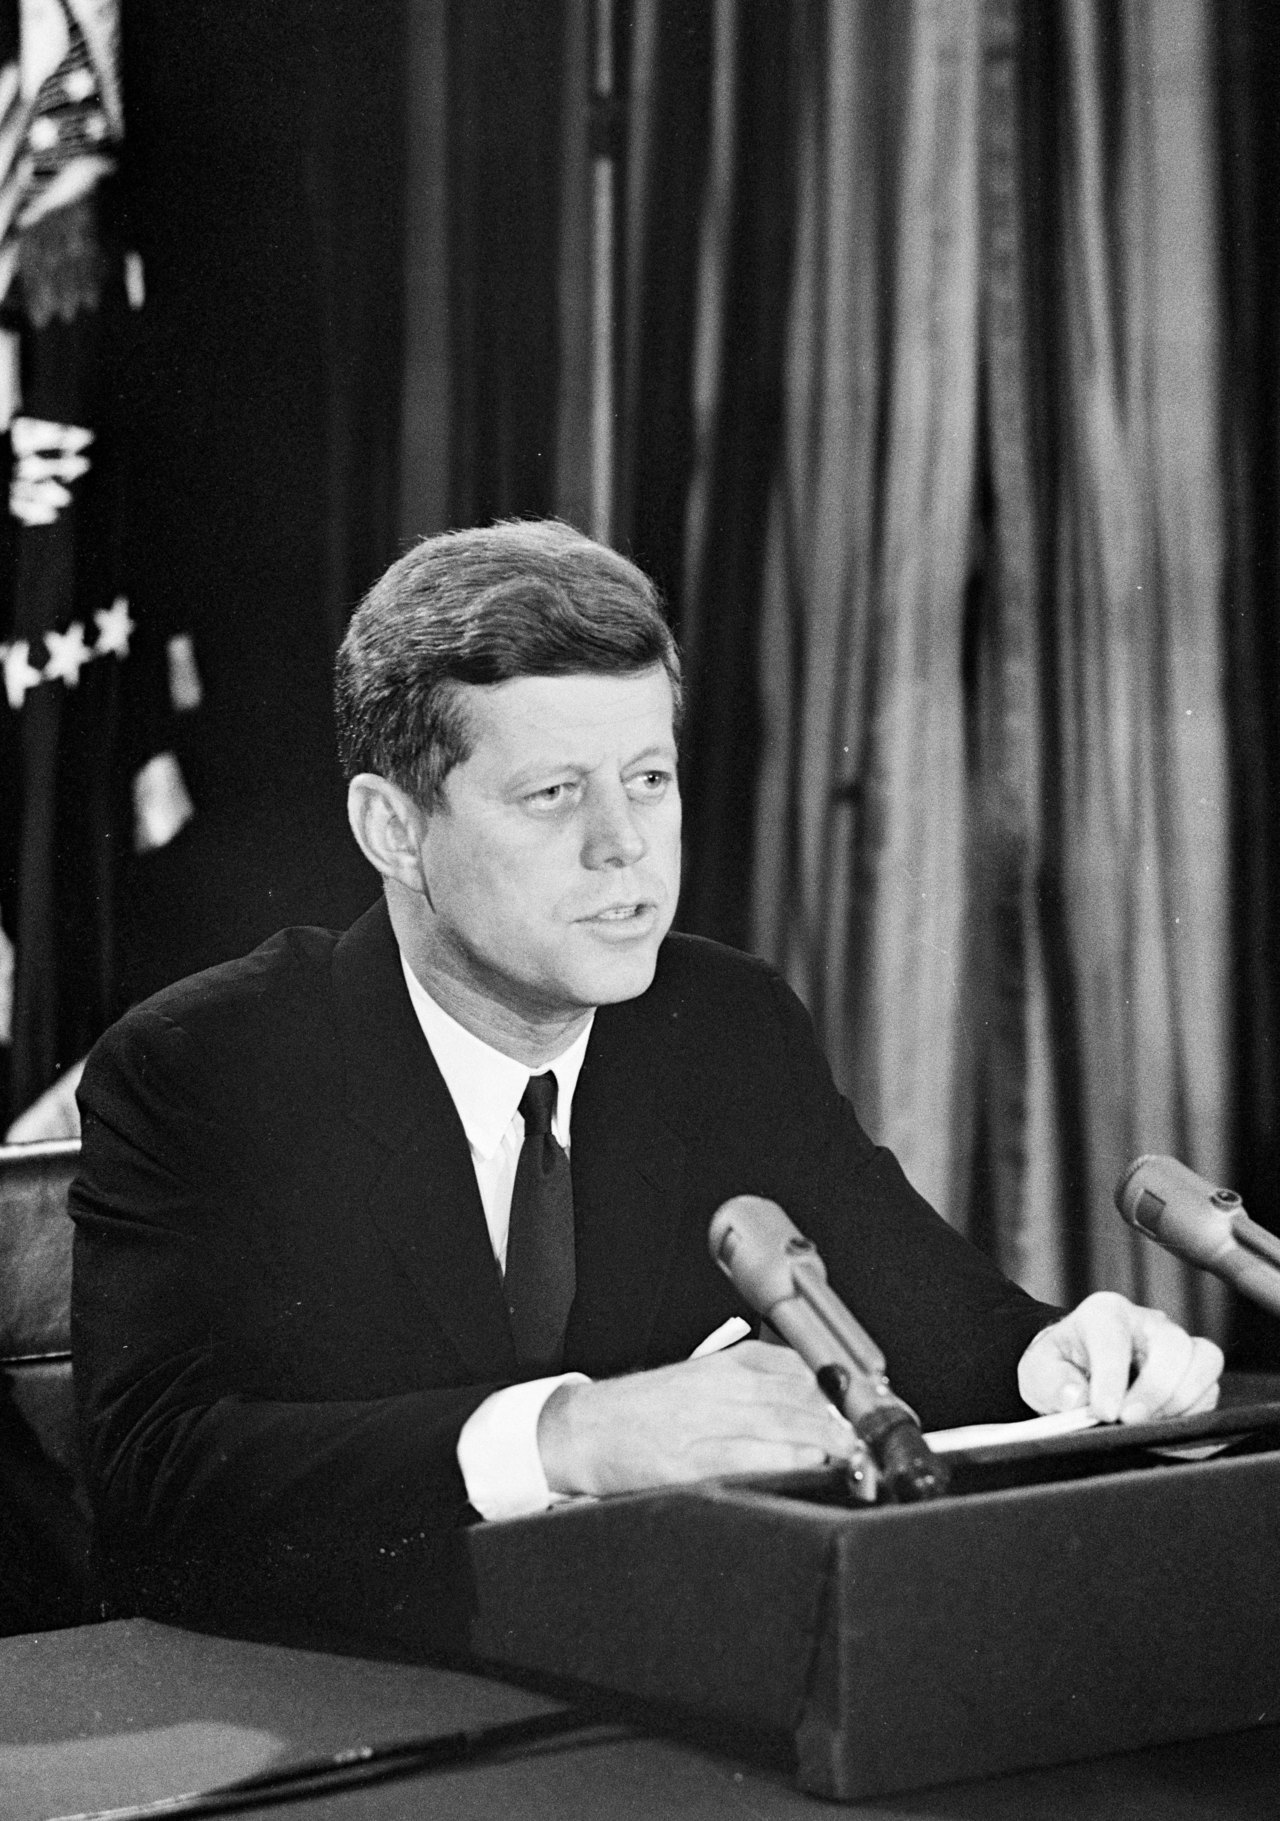 "jfklibrary:  October 22, 1962 — Day 7 of the Cuban Missile Crisis At 7:00 p.m. President Kennedy makes a televised address, revealing the evidence of Soviet missiles in Cuba and calling for their removal. He also announces the establishment of a naval quarantine around the island until the Soviet Union agrees to dismantle the missile sites and to make certain that no additional missiles are shipped to Cuba. Near the conclusion of his speech, JFK says this:  ""My fellow citizens: let no one doubt that this is a difficult and dangerous effort on which we have set out. No one can see precisely what course it will take or what costs or casualties will be incurred. Many months of sacrifice and self-discipline lie ahead—months in which our patience and our will will be tested—months in which many threats and denunciations will keep us aware of our dangers. But the greatest danger of all would be to do nothing.""  Listen to JFK's address and read the full transcript here. Watch a video of JFK's address here. (source: jfklibrary.org)  The National Archives' latest exhibit: ""To the Brink: JFK and the Cuban Missile Crisis"" covers the 13 days when the world teetered on the brink of thermonuclear war."